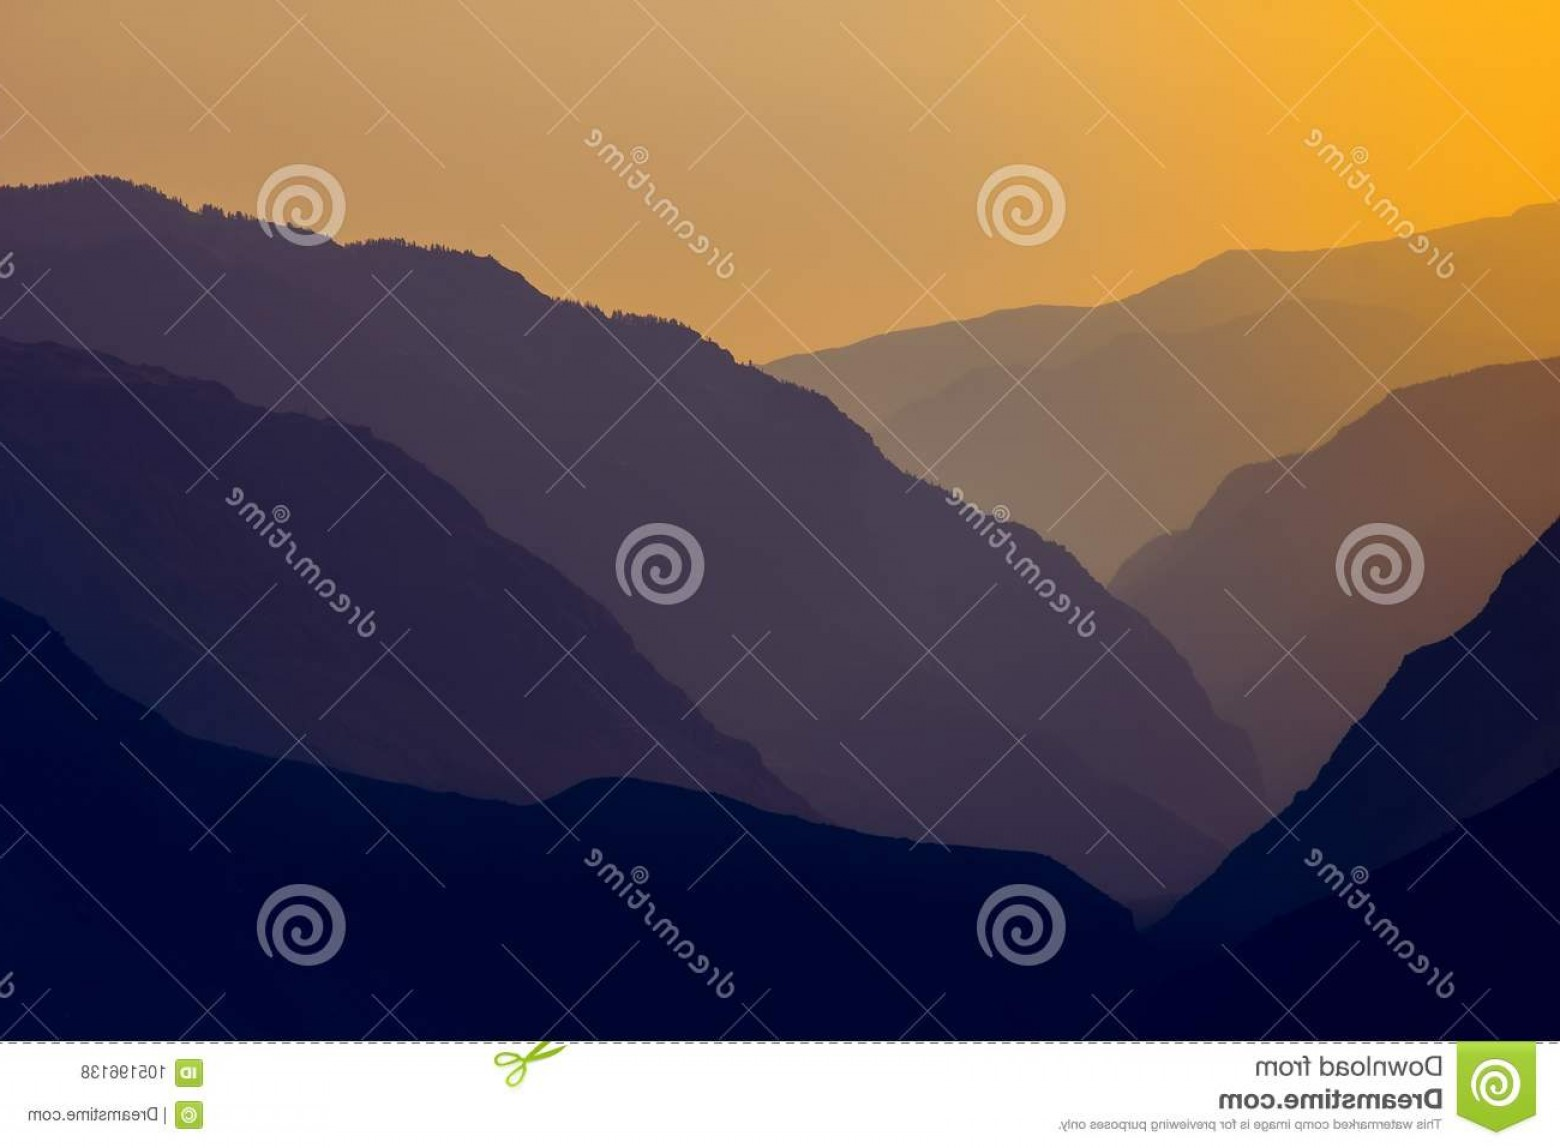 Setting Sun Vector Outline: Silhouettes Outlines Mountain Massif Setting Sun Silhouettes Outlines Mountain Massif Setting Sun Image